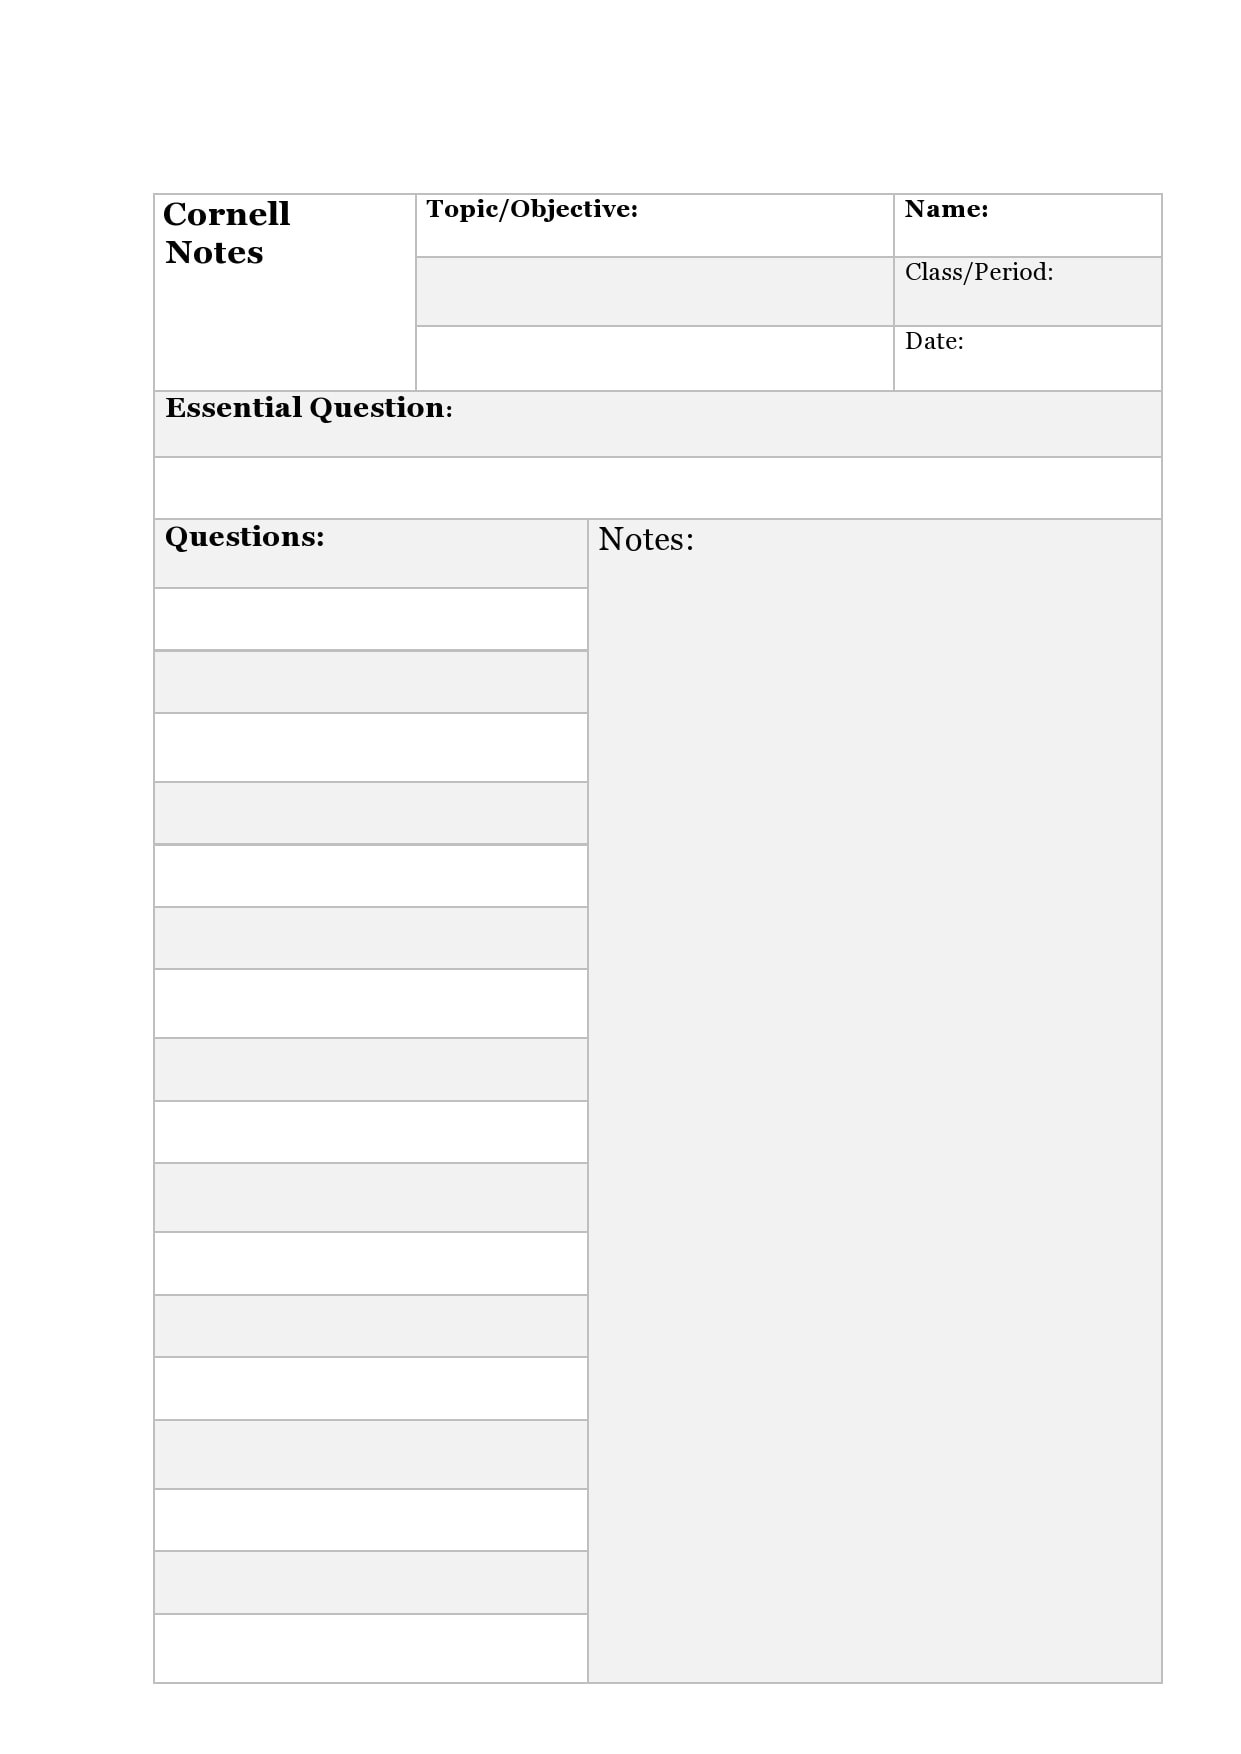 cornell notes template 09